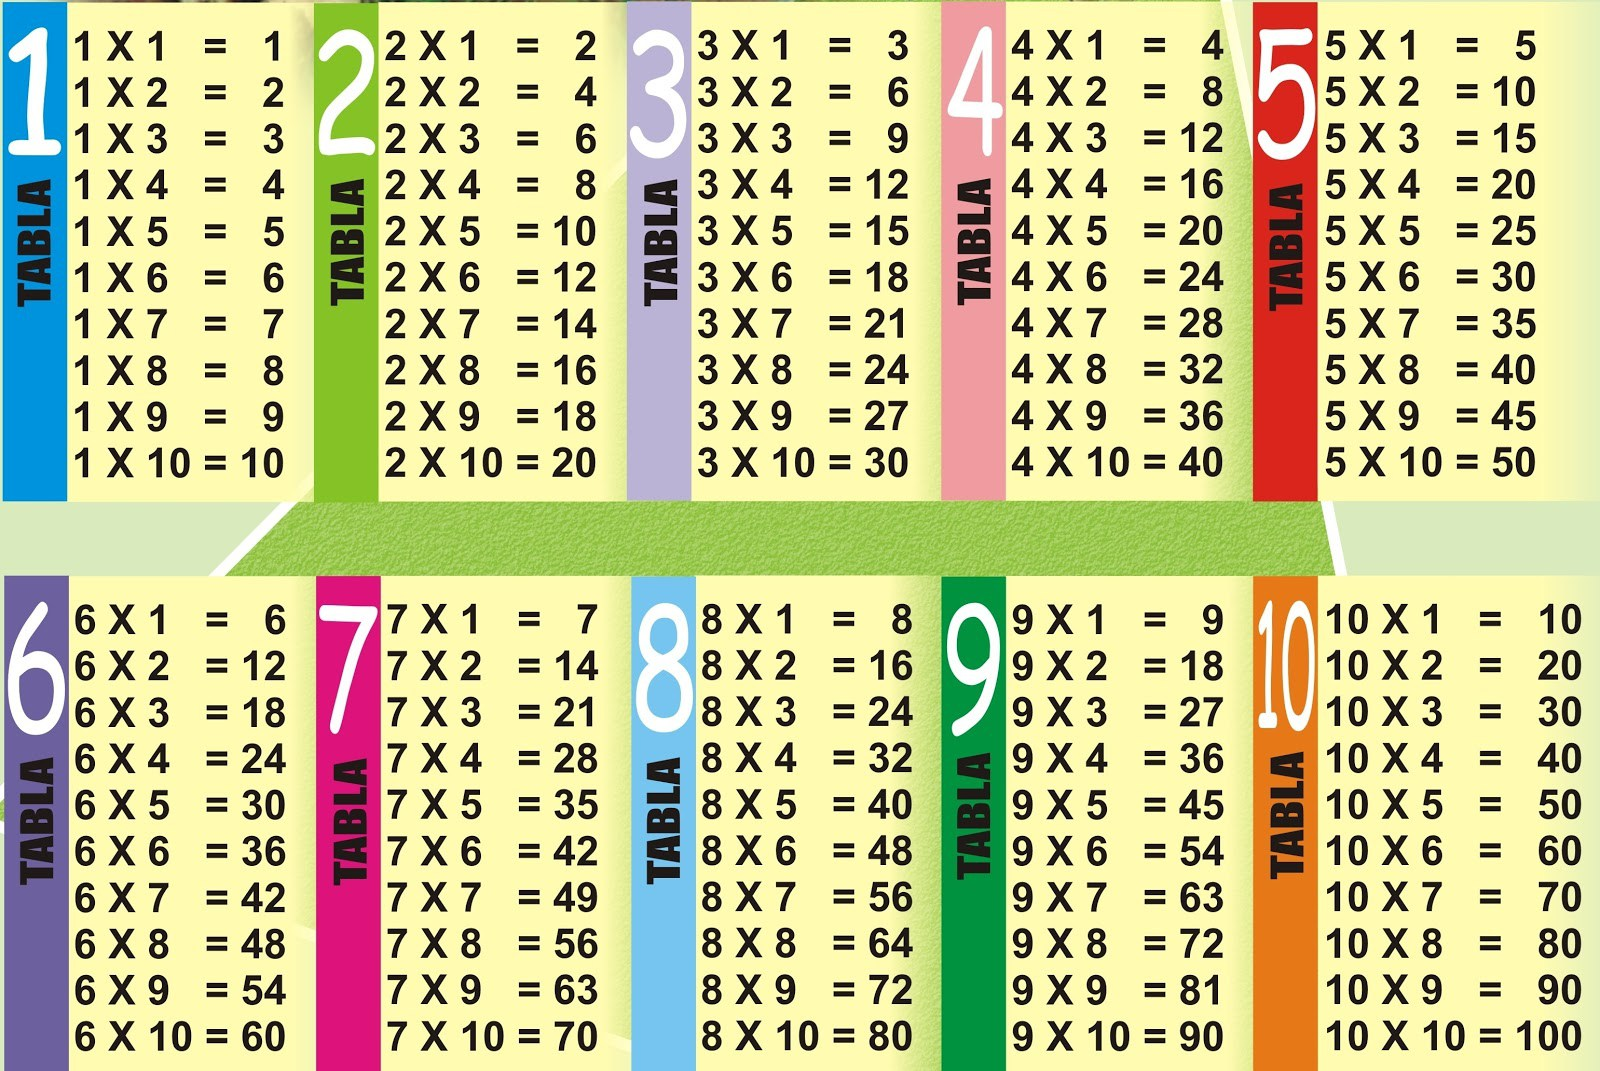 Multiplication table 1 10 printable 8 funnycrafts for Table 8 multiplication